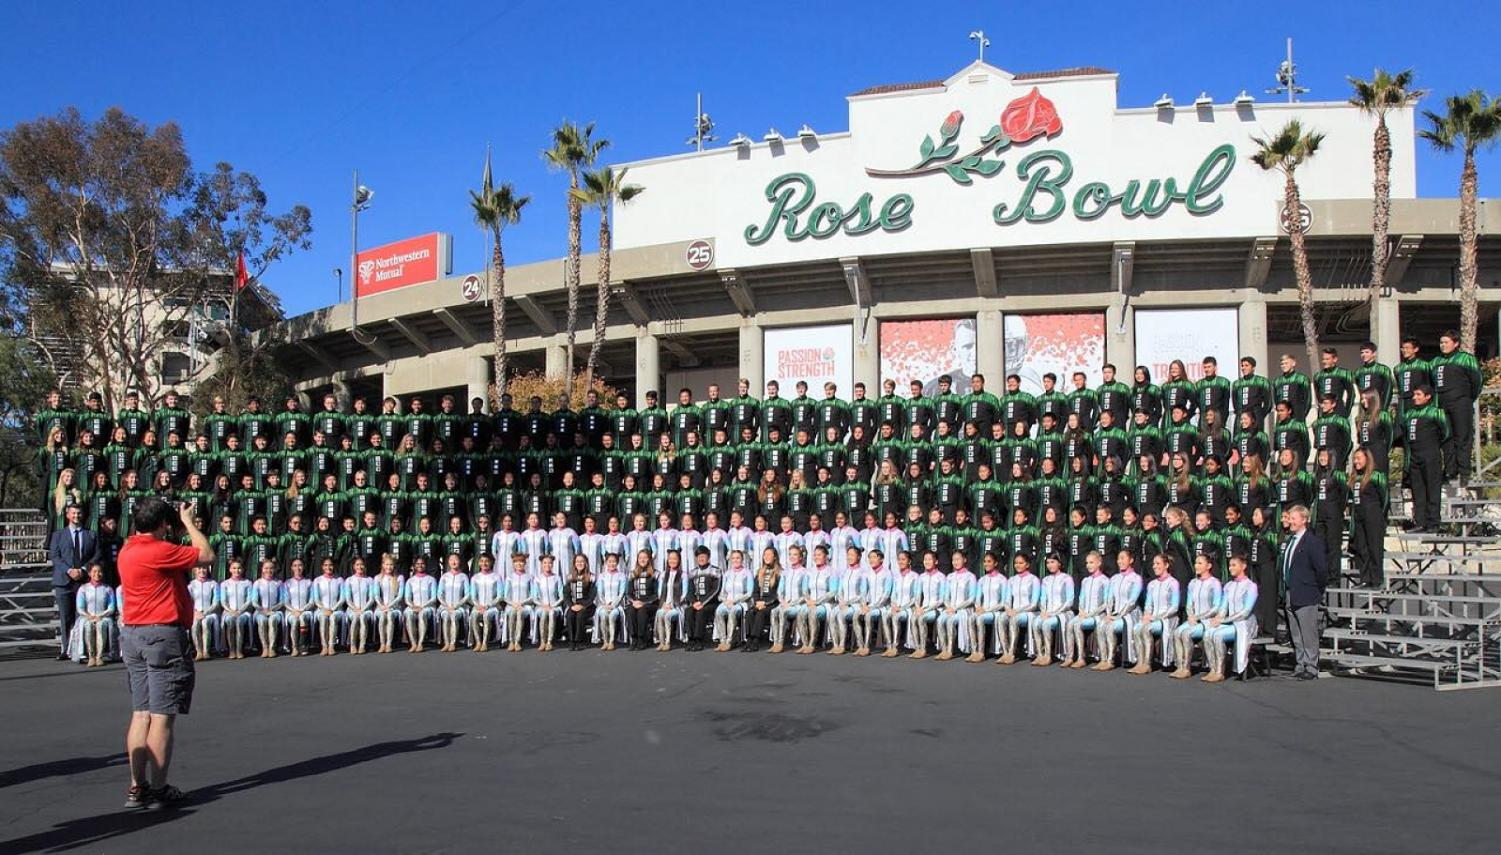 The HHS Marching Band poses for a group picture before the Rose Bowl